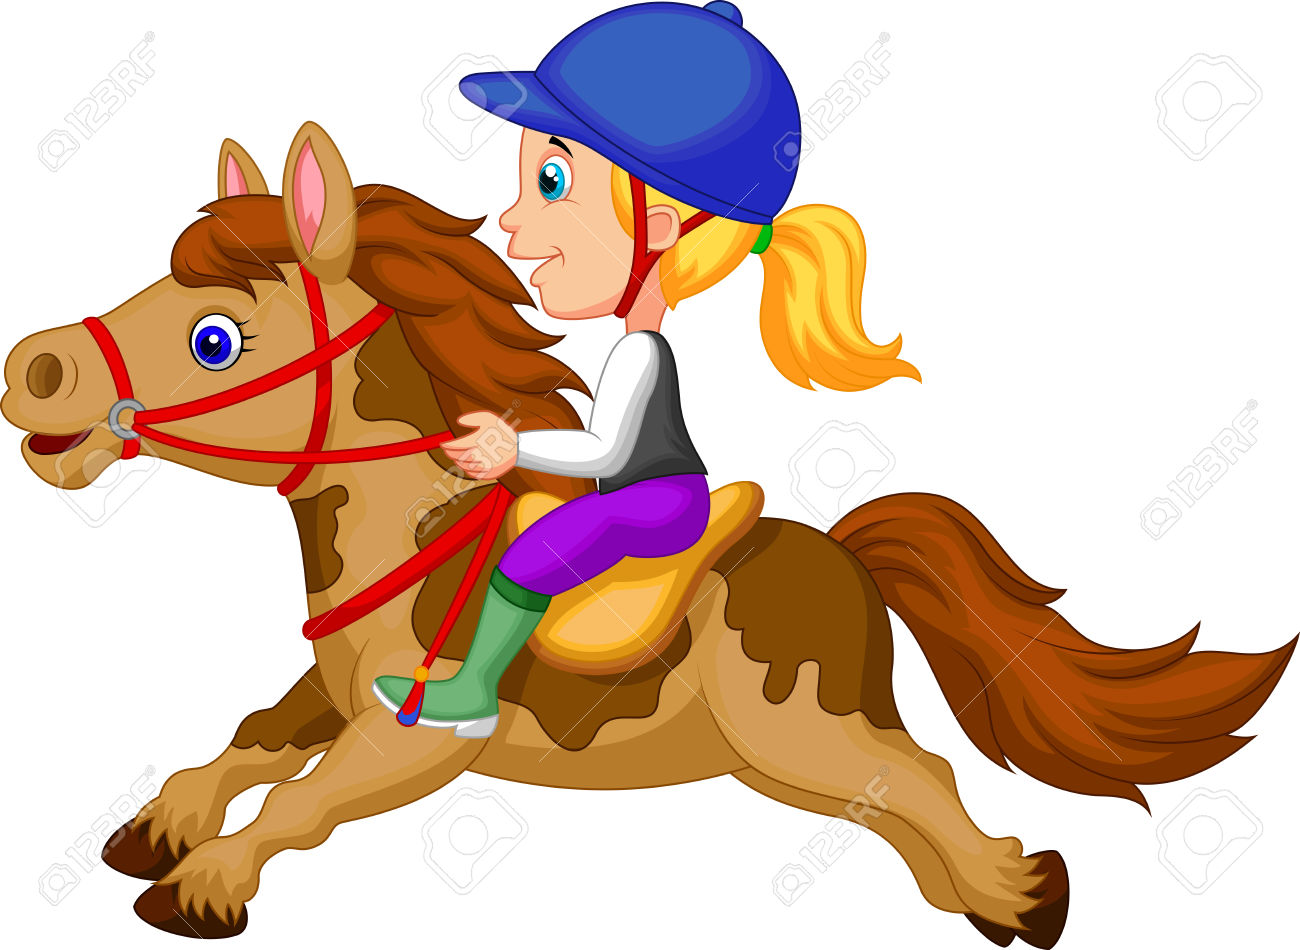 4,020 Horseback Riding Stock Illustrations, Cliparts And Royalty.